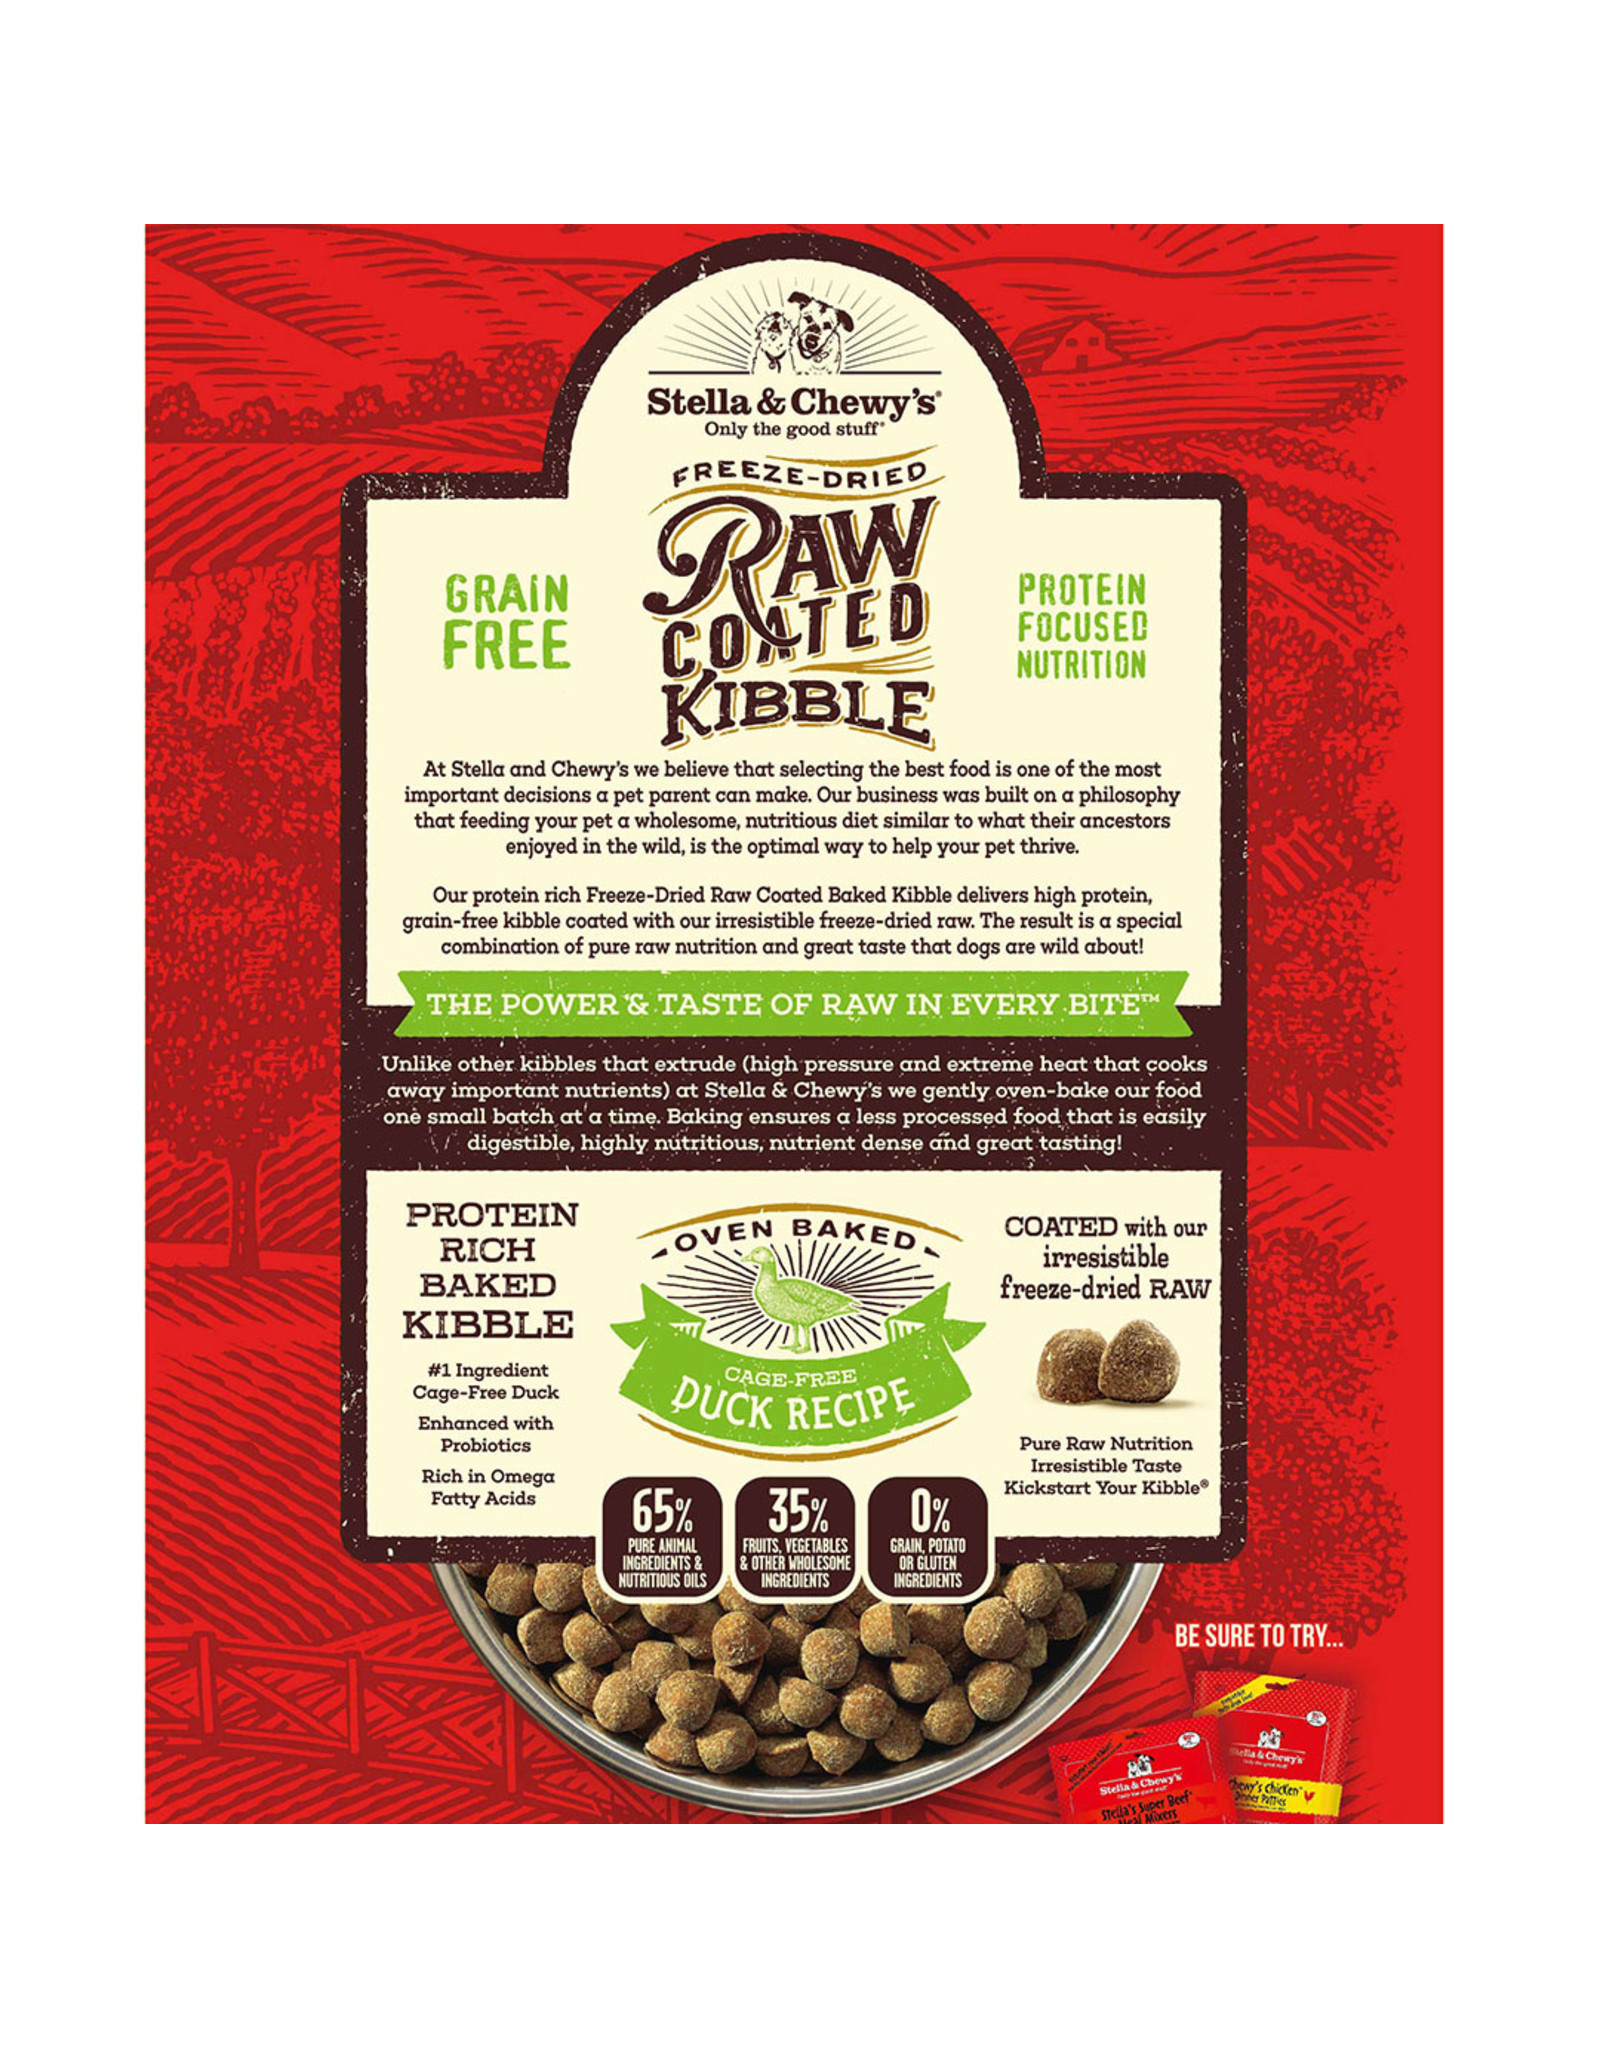 Stella & Chewy's Stella & Chewy's Raw Coated Kibble Cage-Free Duck Recipe Dog Food 22lb